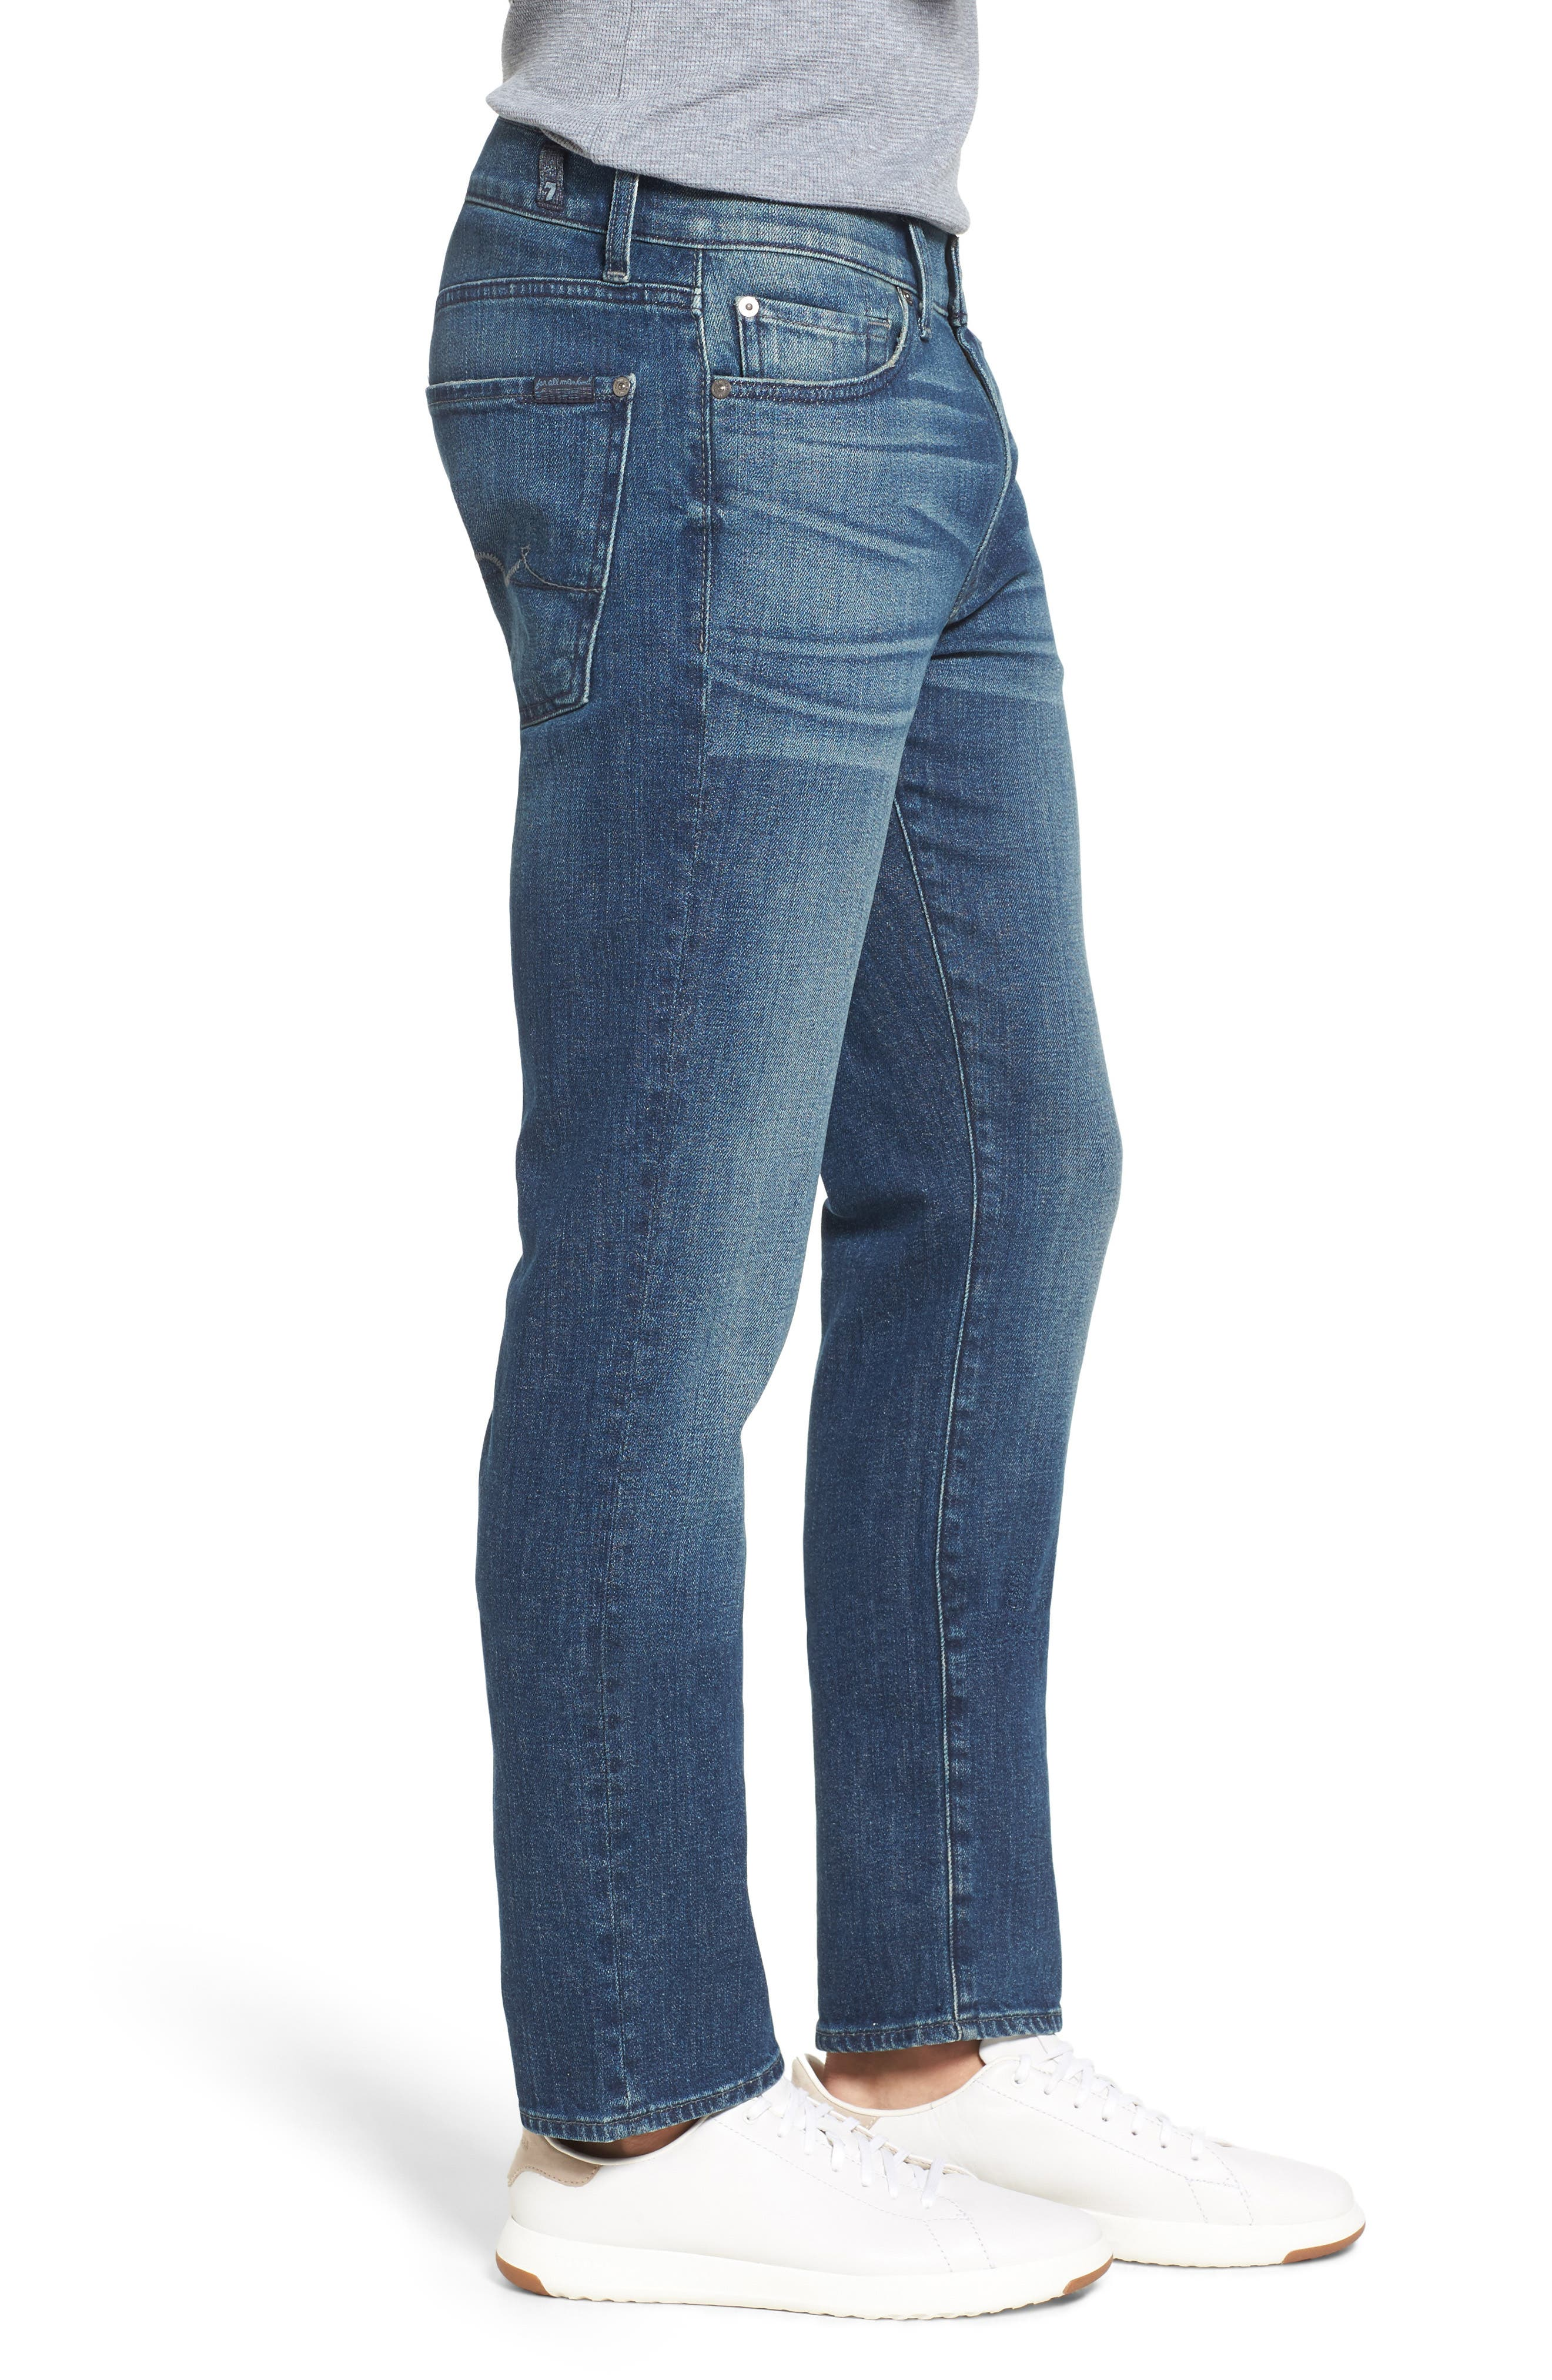 7 For All Mankind Slimmy Slim Fit Jeans,                             Alternate thumbnail 3, color,                             406